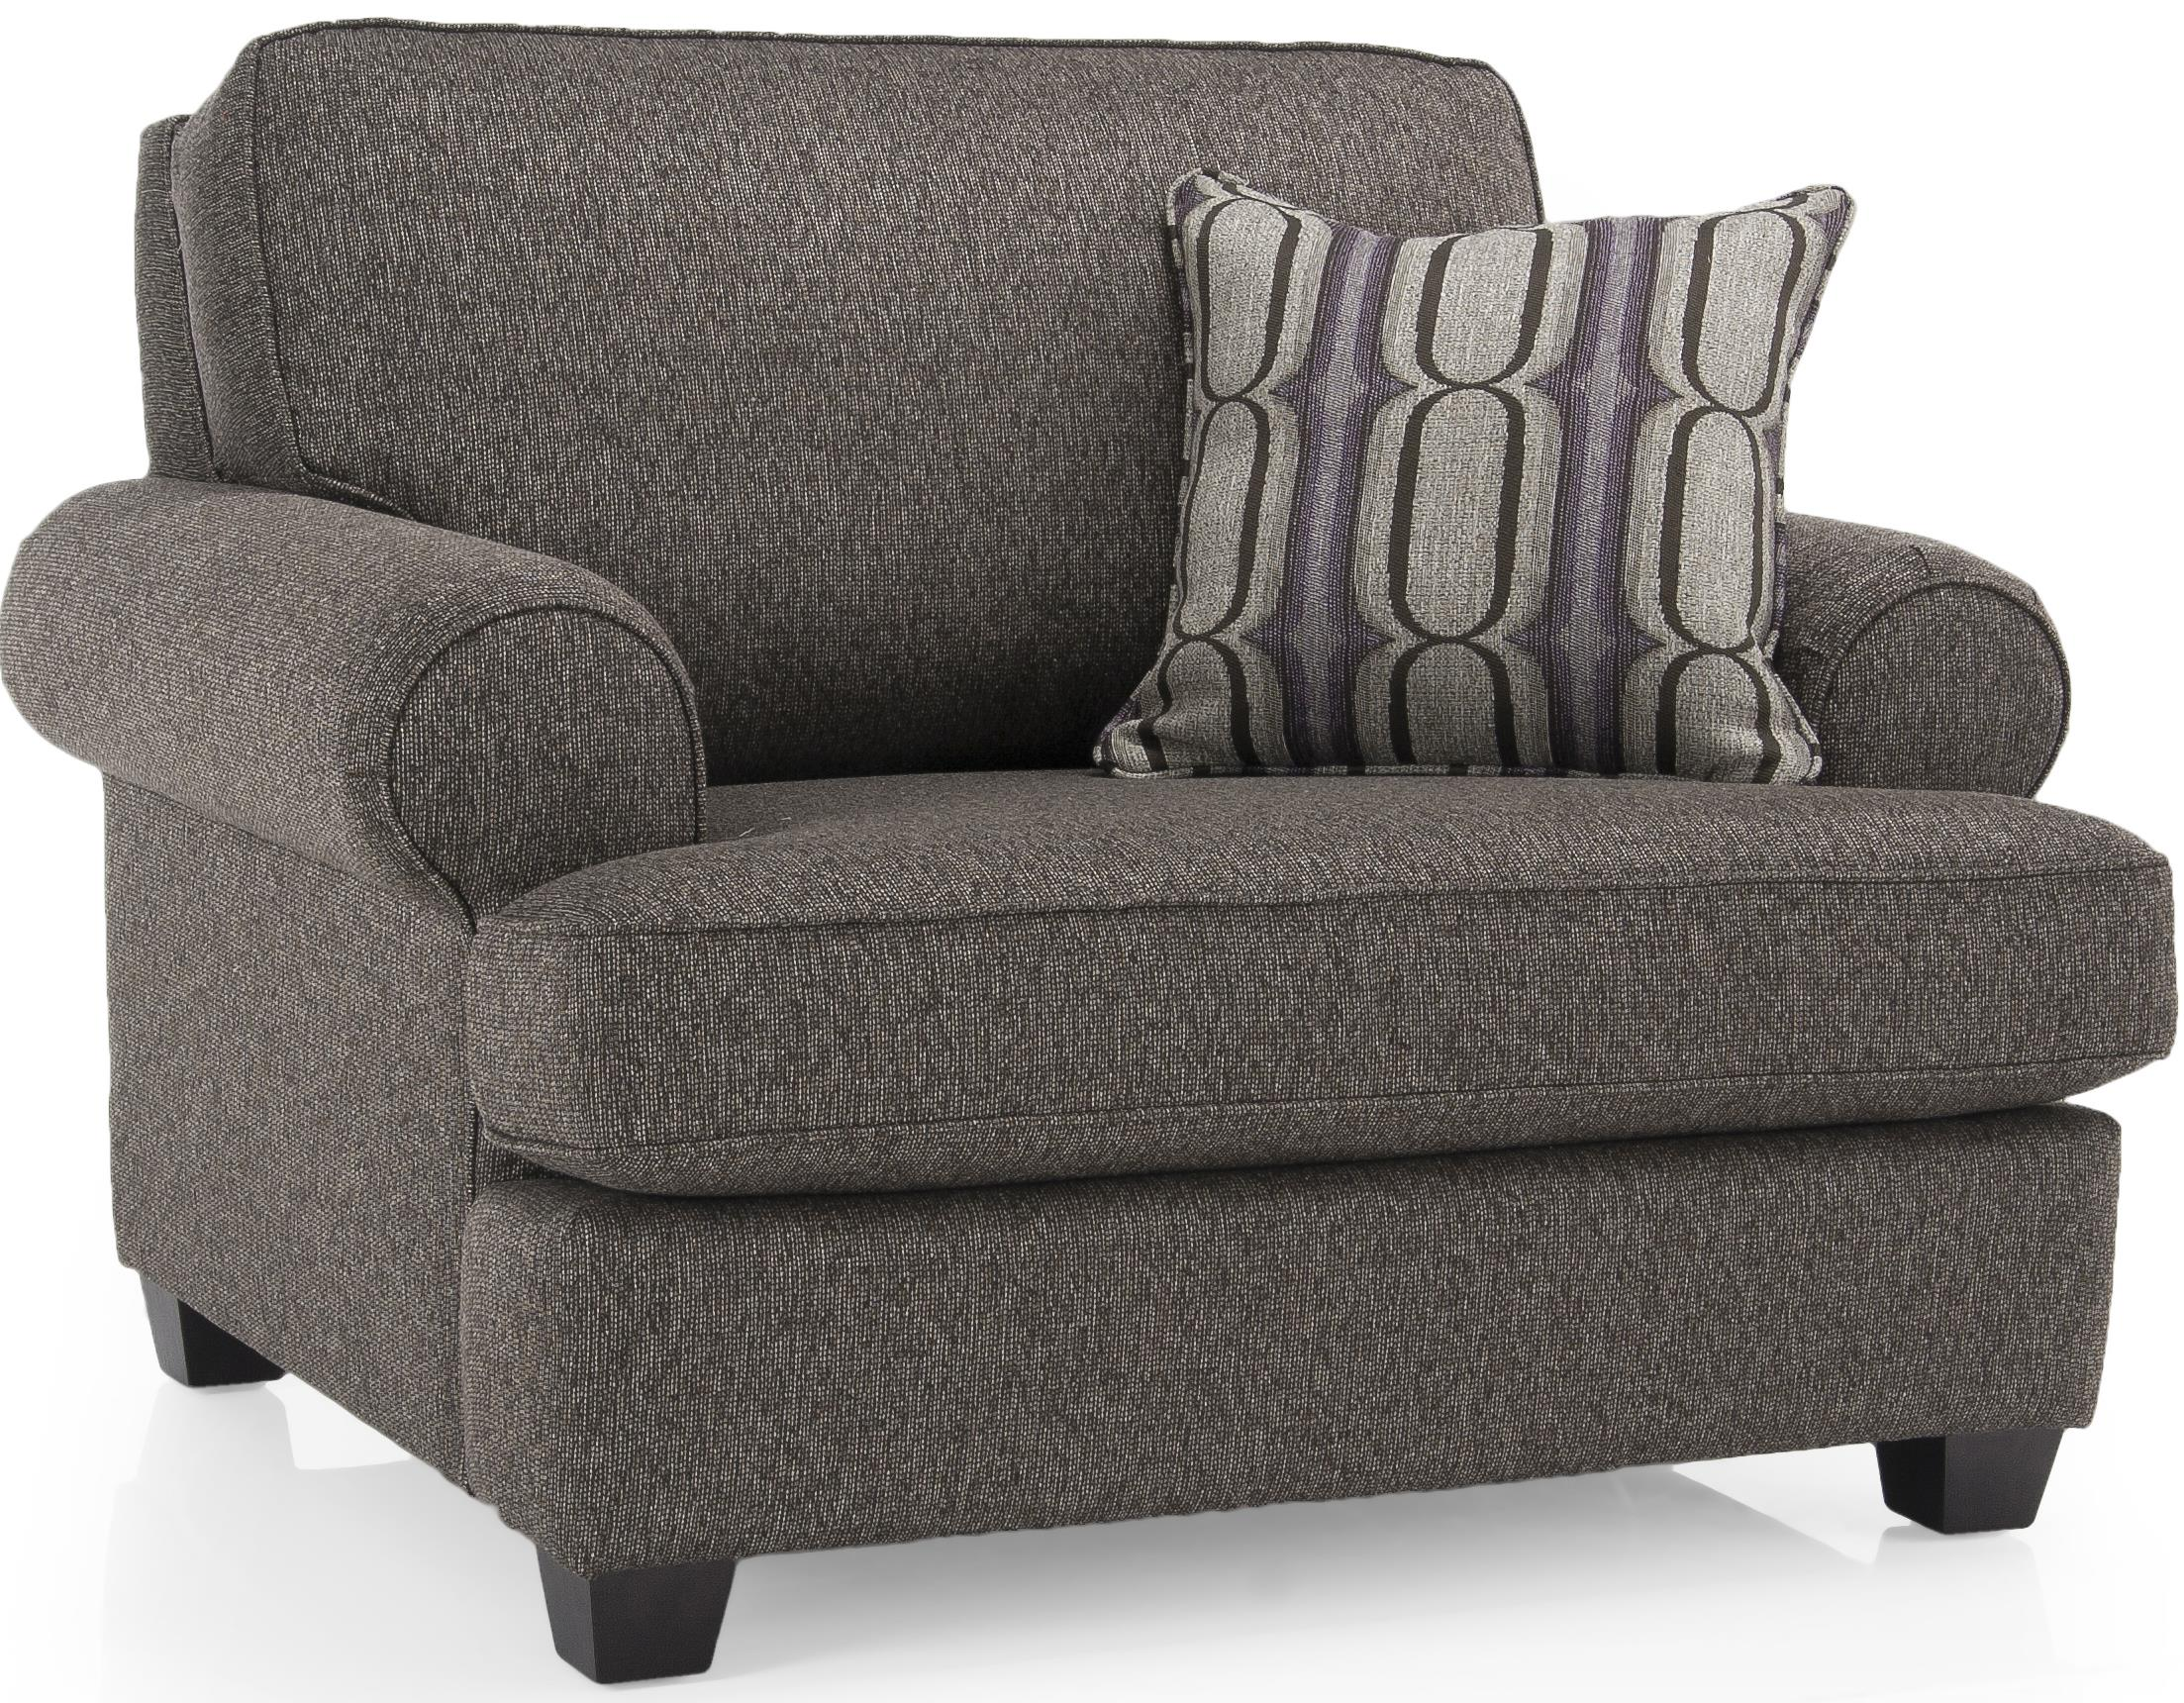 2285 Chair and a Half by Decor-Rest at Wayside Furniture